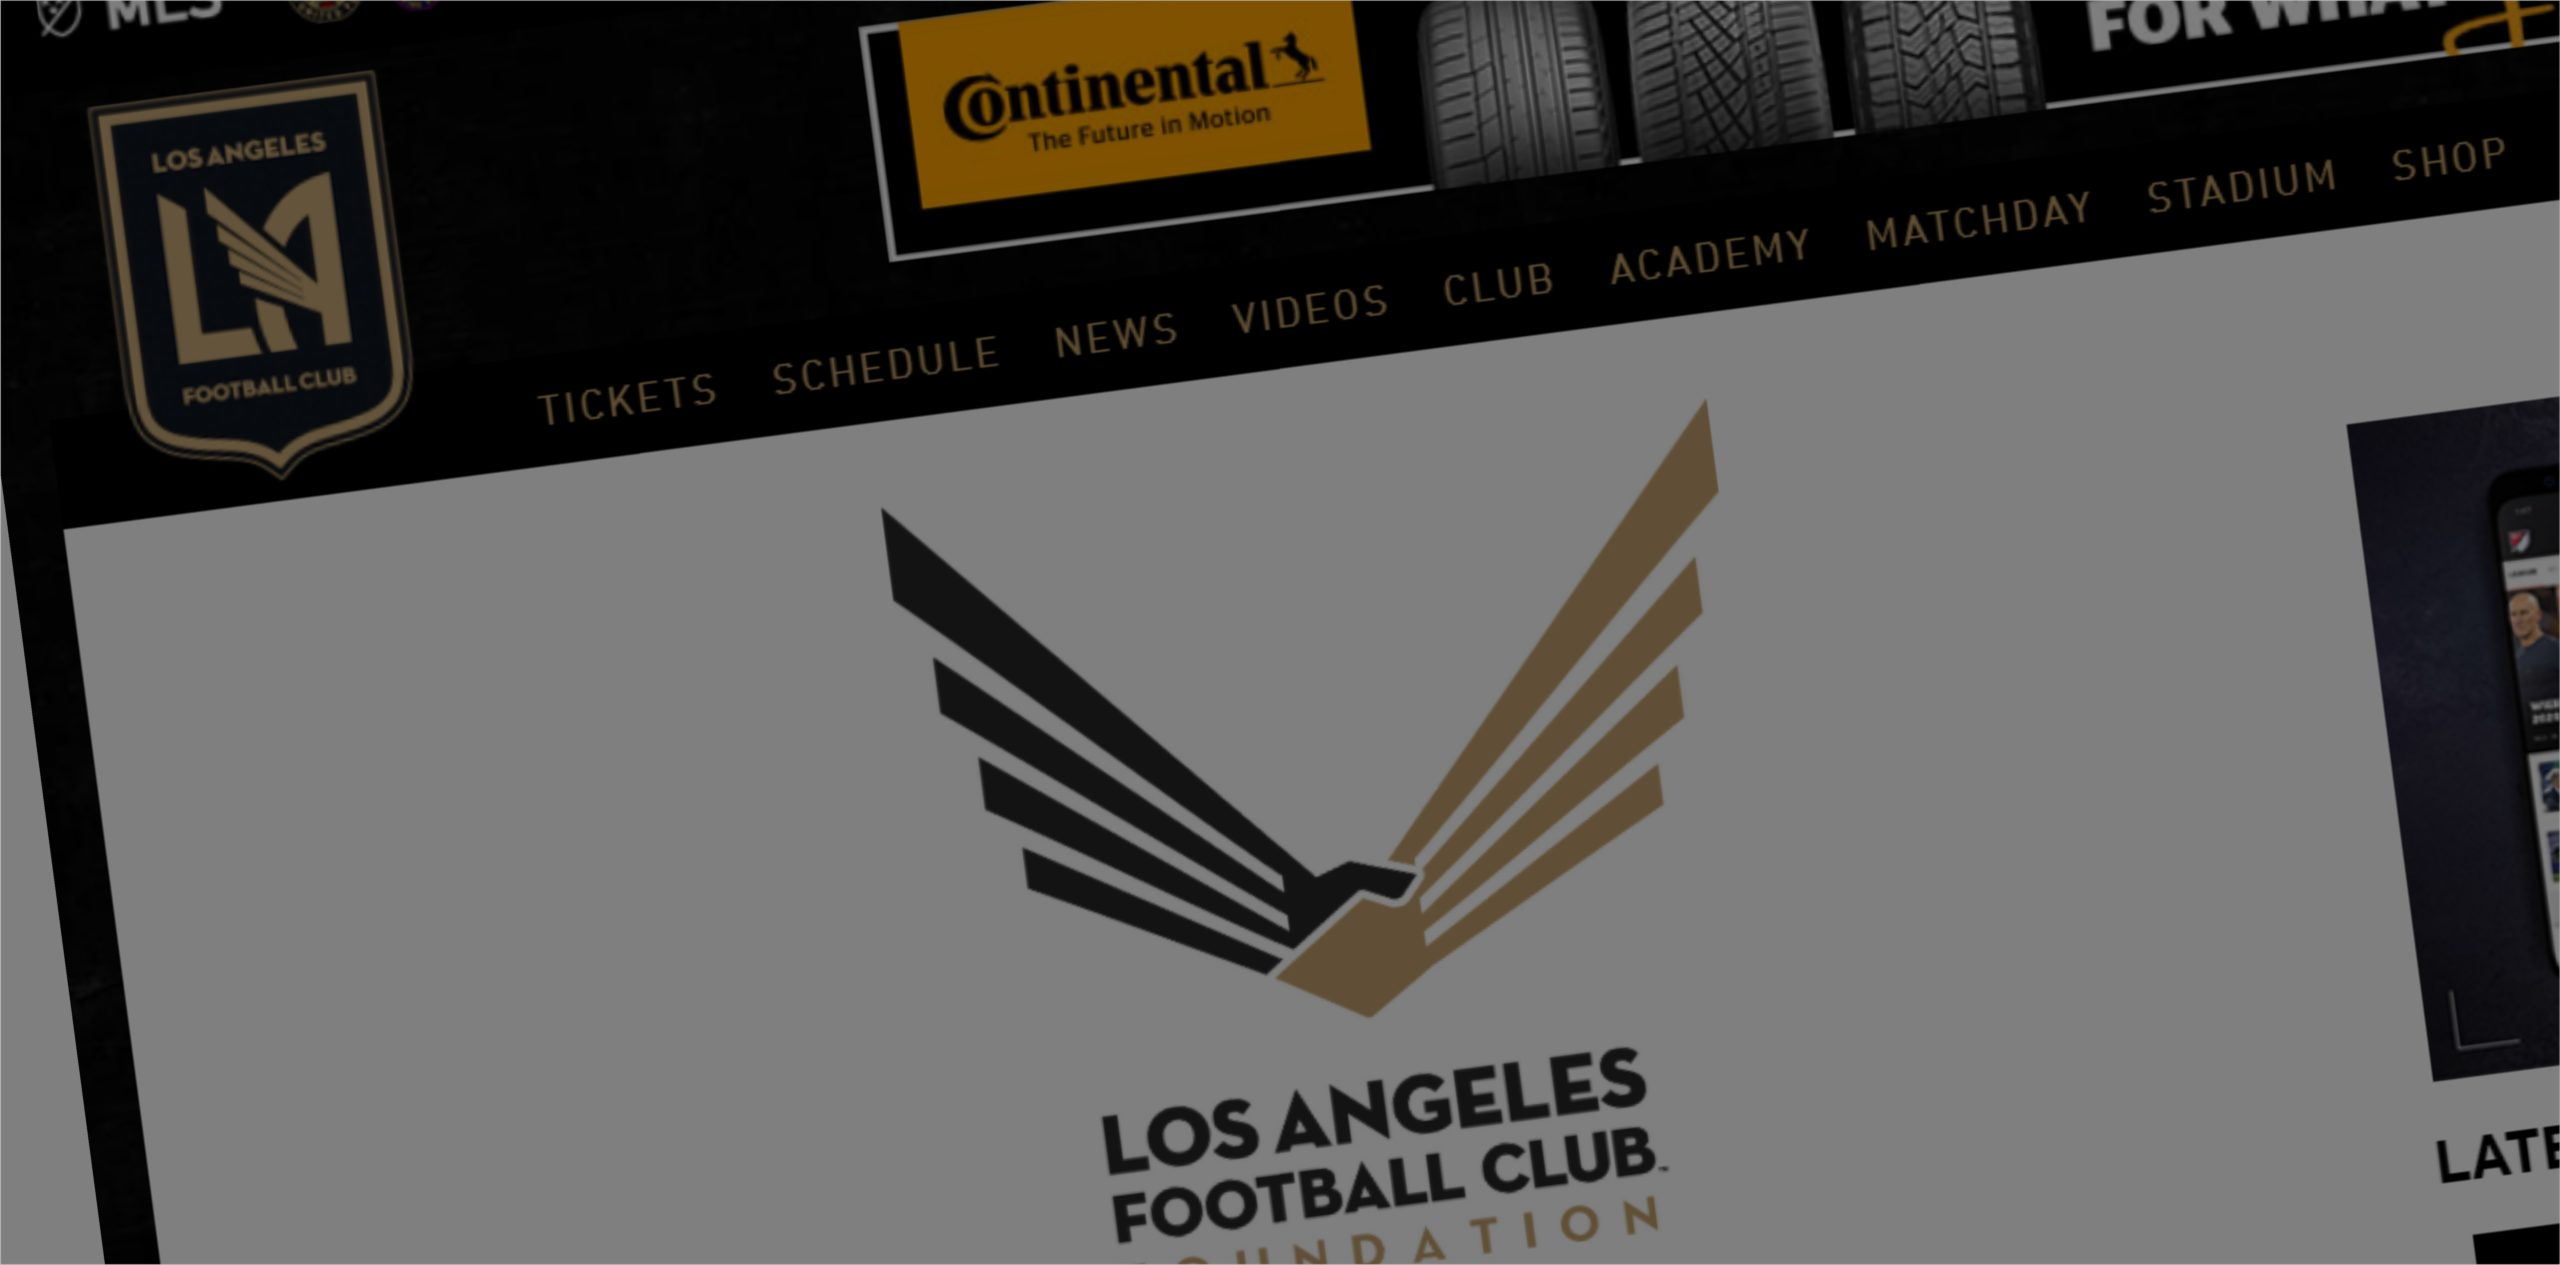 Los Angeles FC Foundation | MLS Magazine Italia